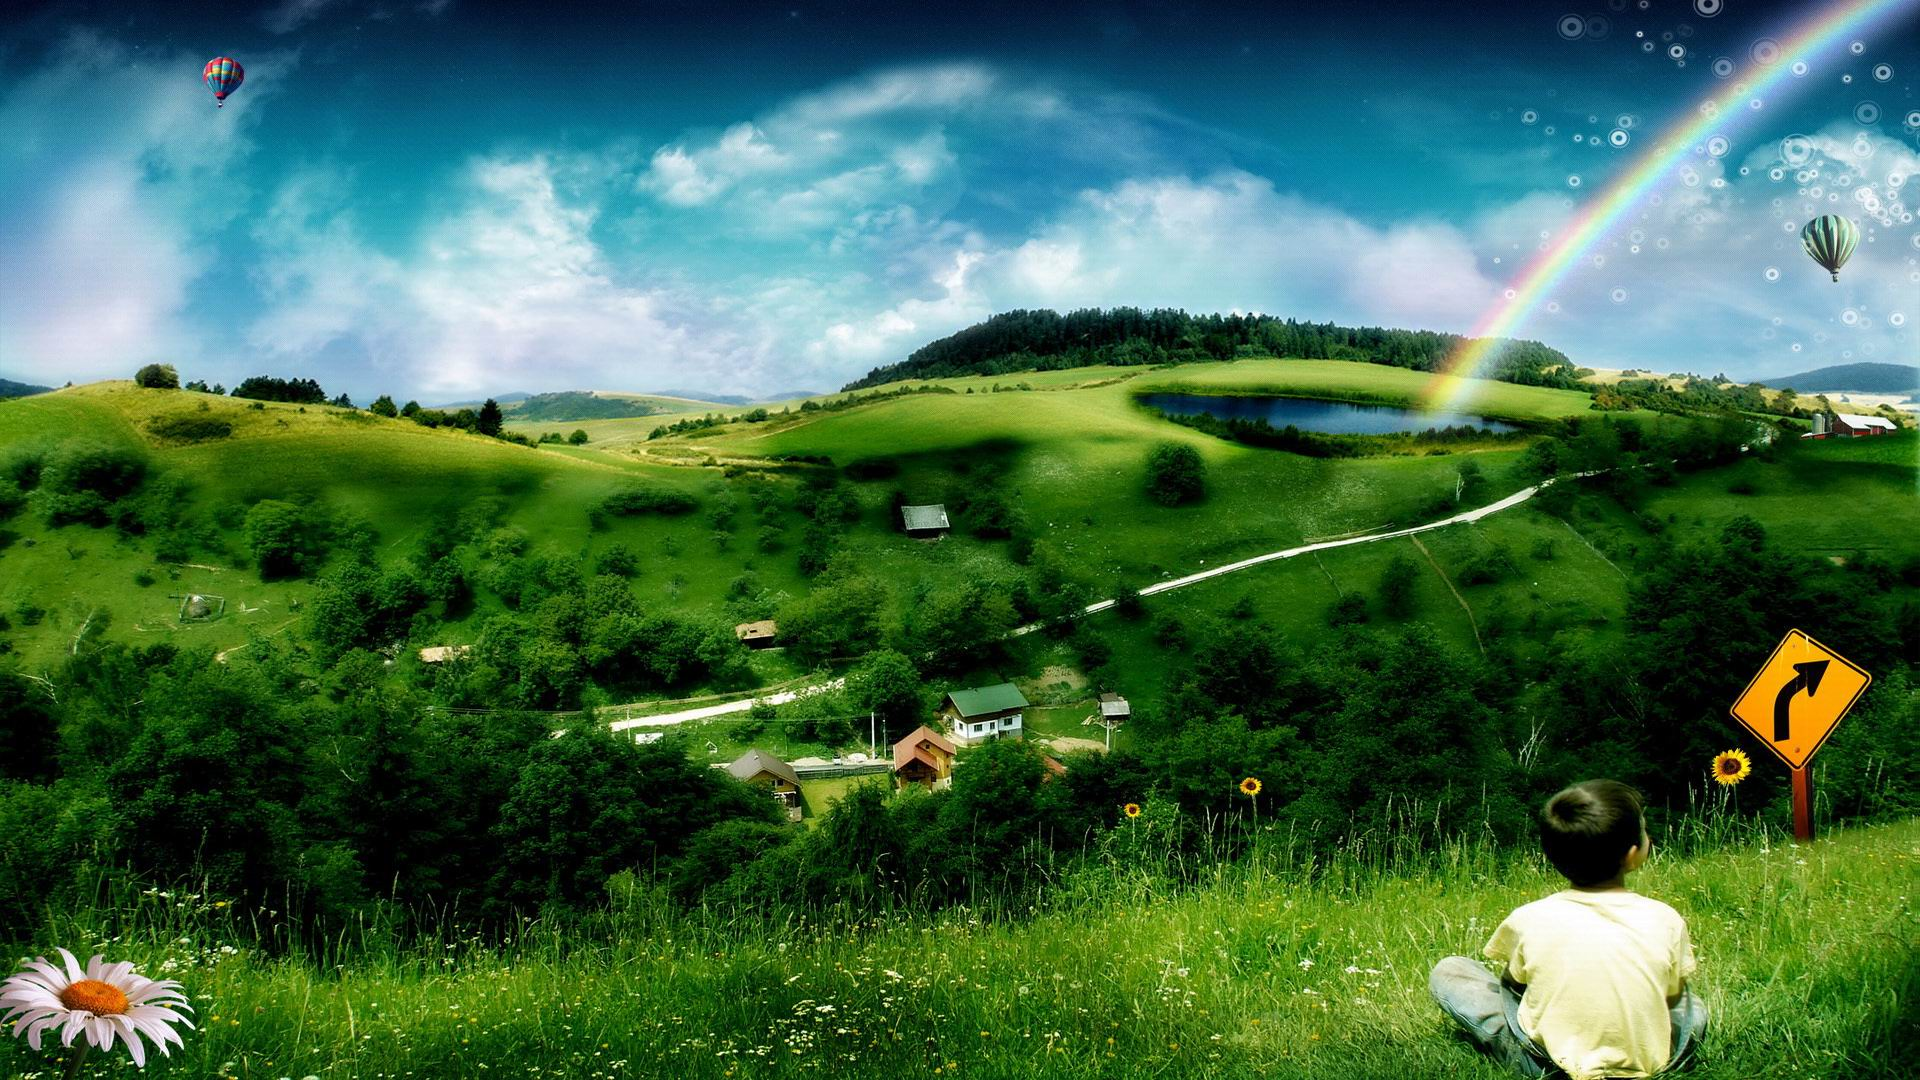 High Definition HD Wallpapers 230 Full HD Wallpapers 1920x1080 part 1920x1080